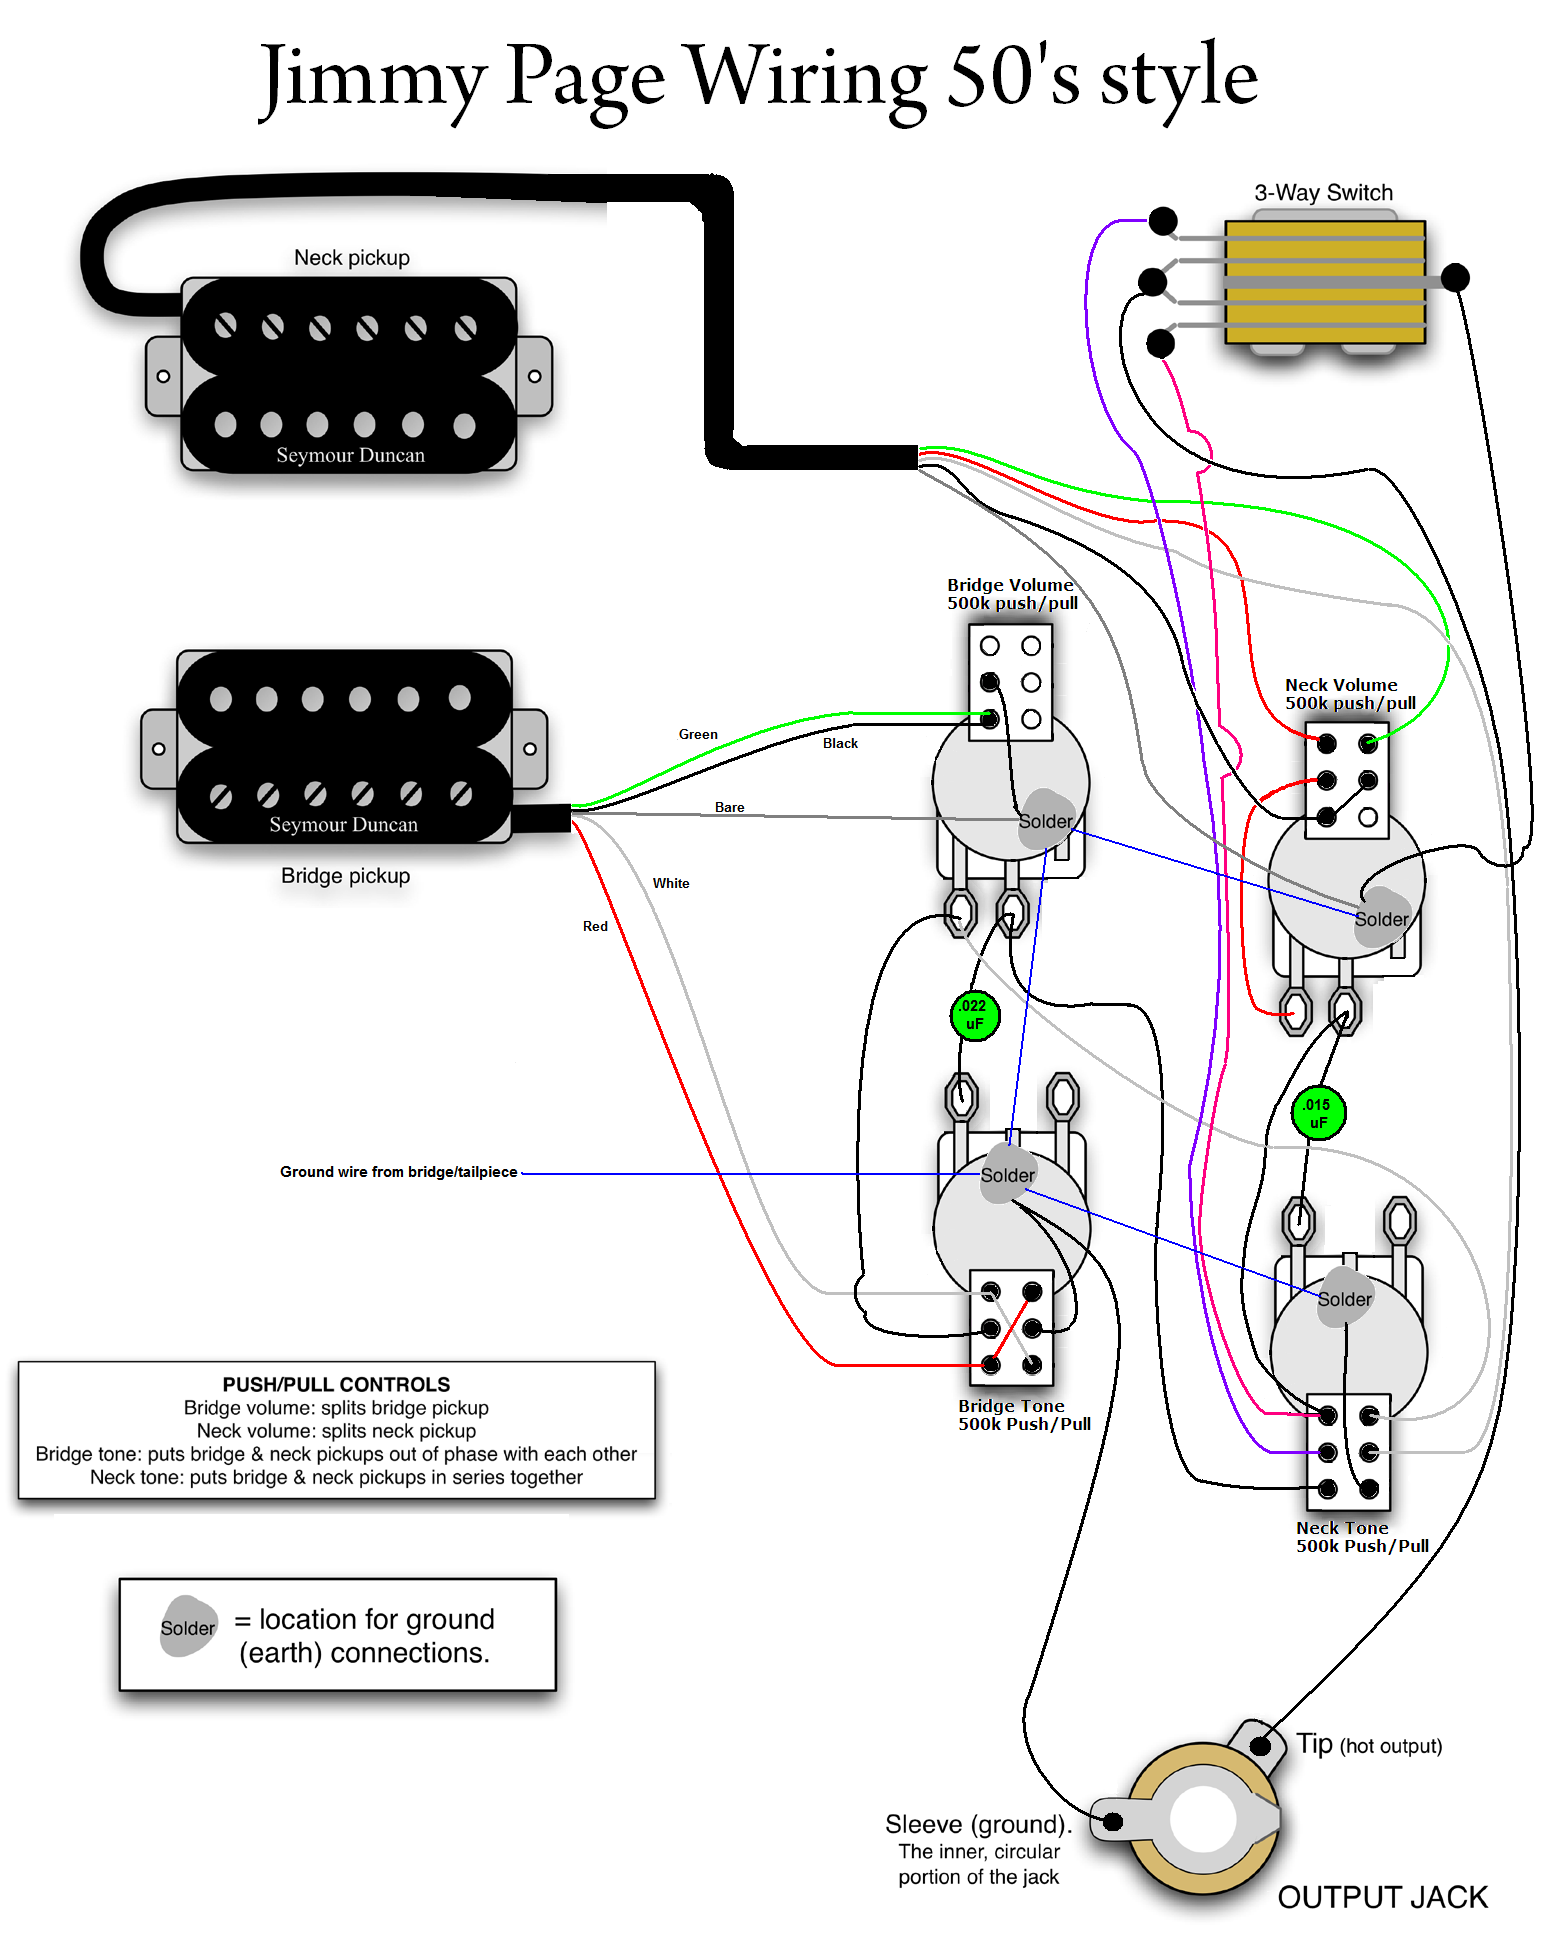 jimmy page 50s wiring